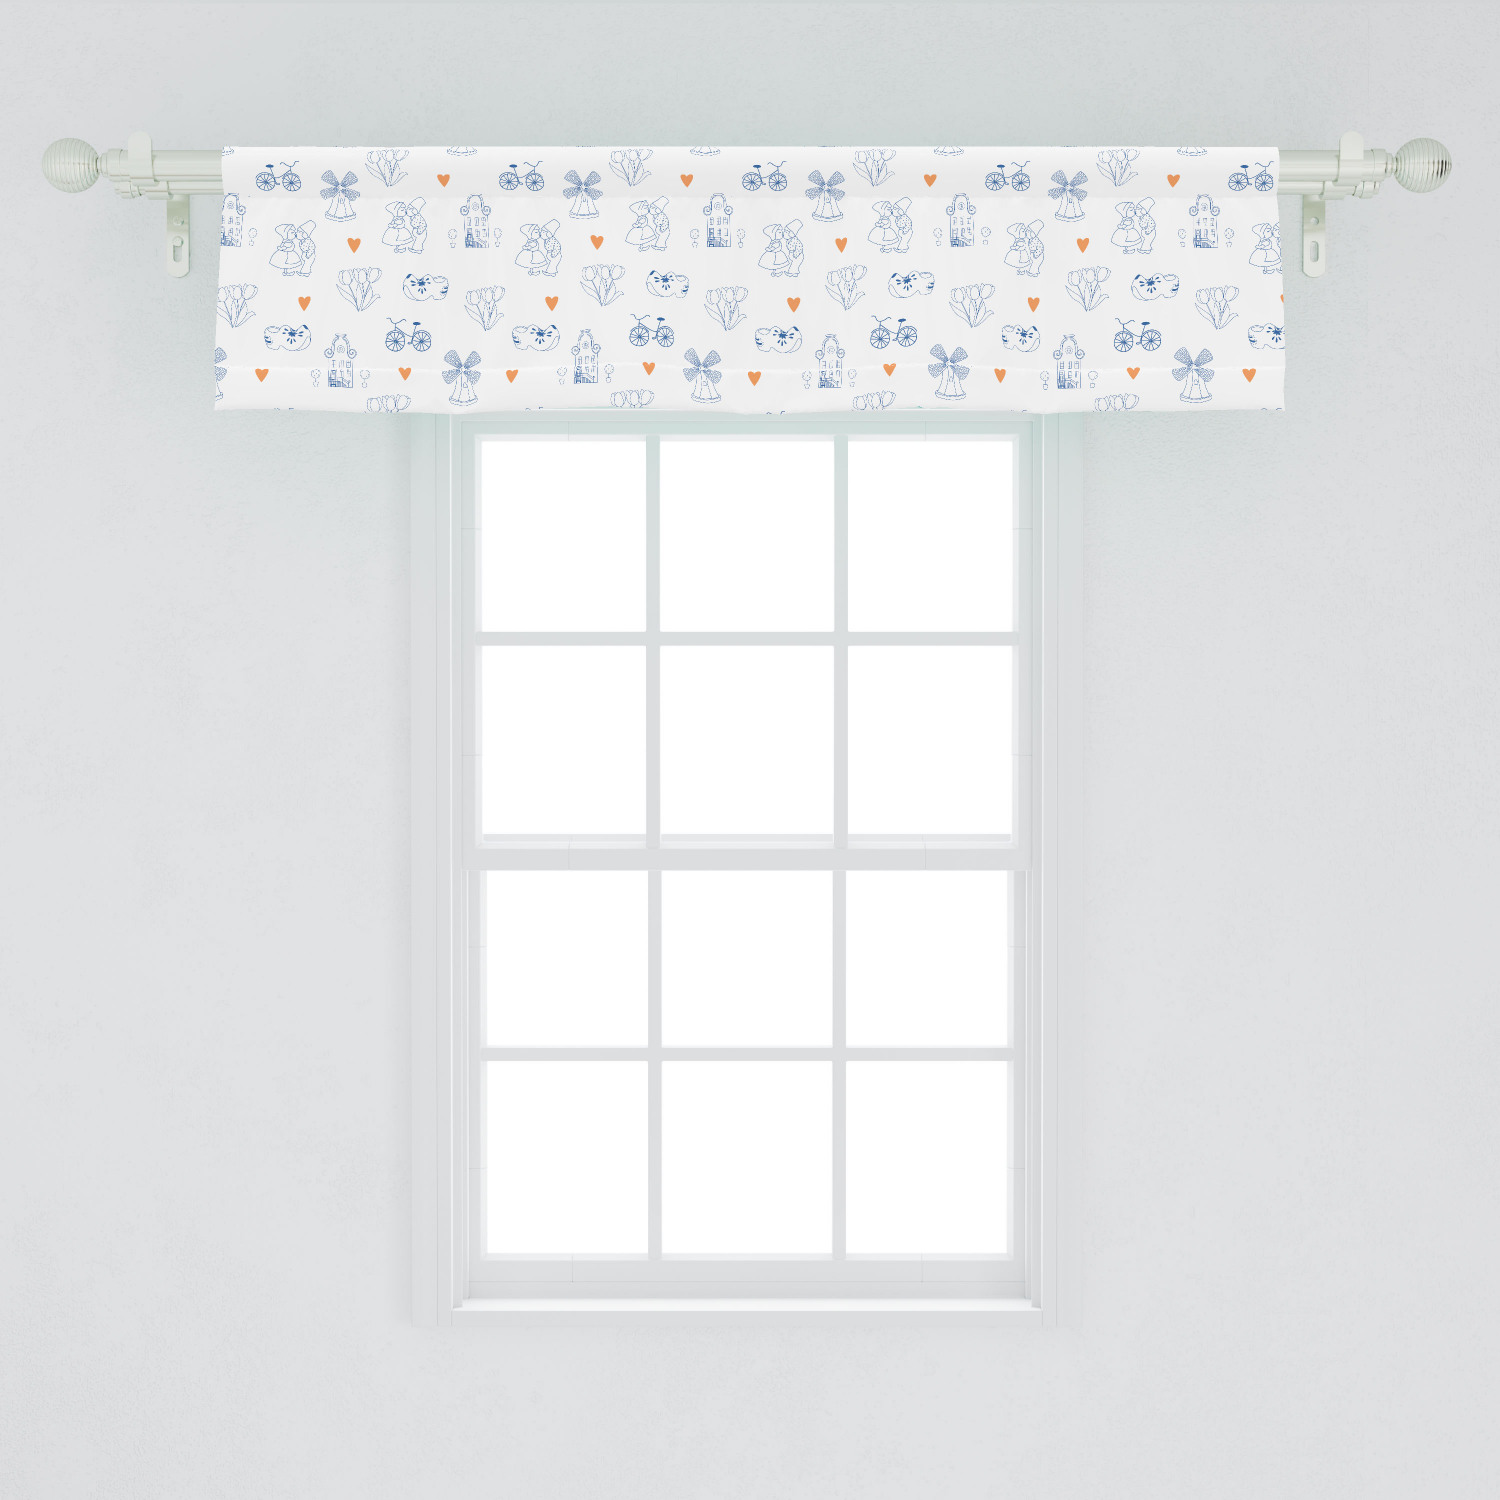 Dutch Window Valance Traditional Holland Culture Elements With Doodle Style Clogs Bicycles Curtain Valance For Kitchen Bedroom Decor With Rod Pocket By Ambesonne Walmart Com Walmart Com